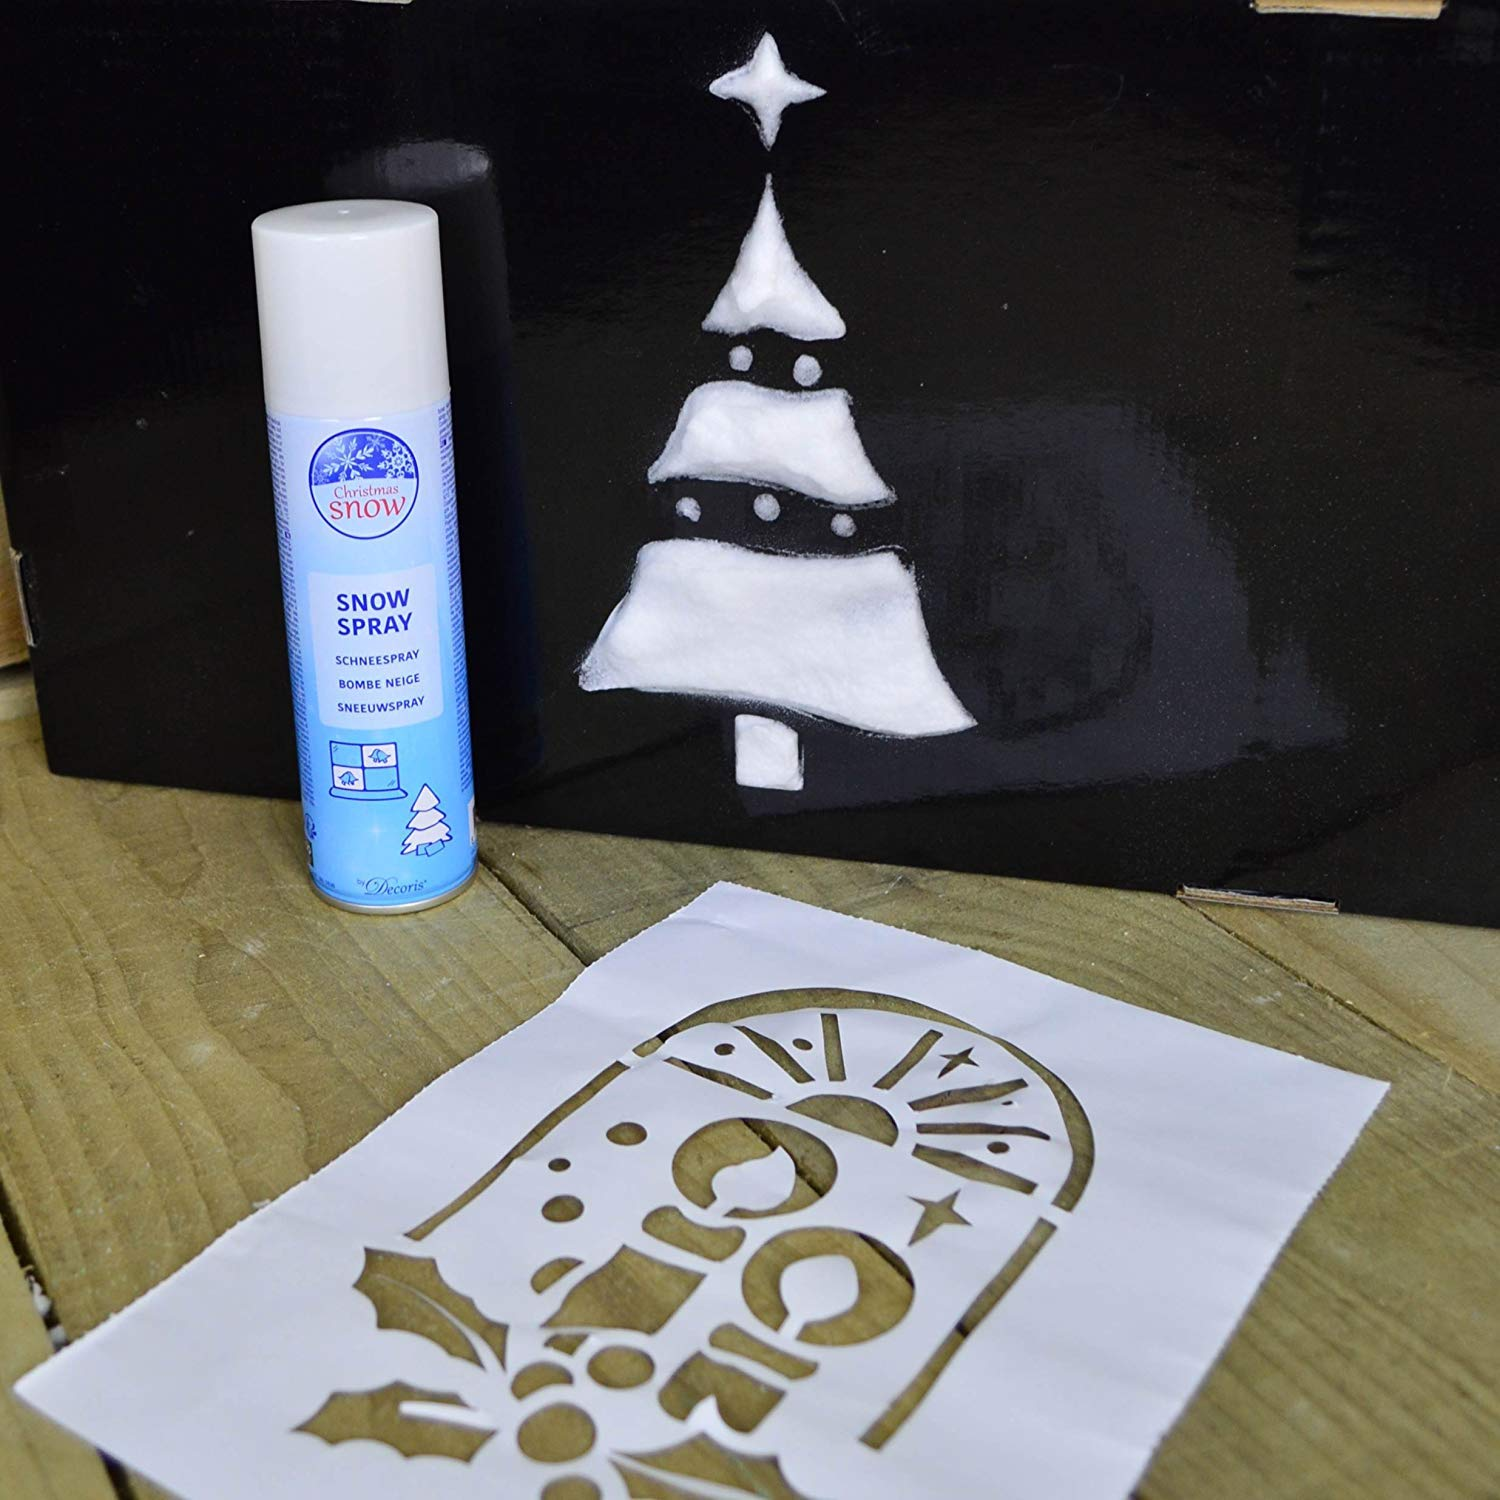 Kaemink SNOW - 400ml Spray Can of Artificial Fake Indoor Powder Snow Spray - Christmas Tree Snow and Window Snow Decoration suitable for Snow Stencils